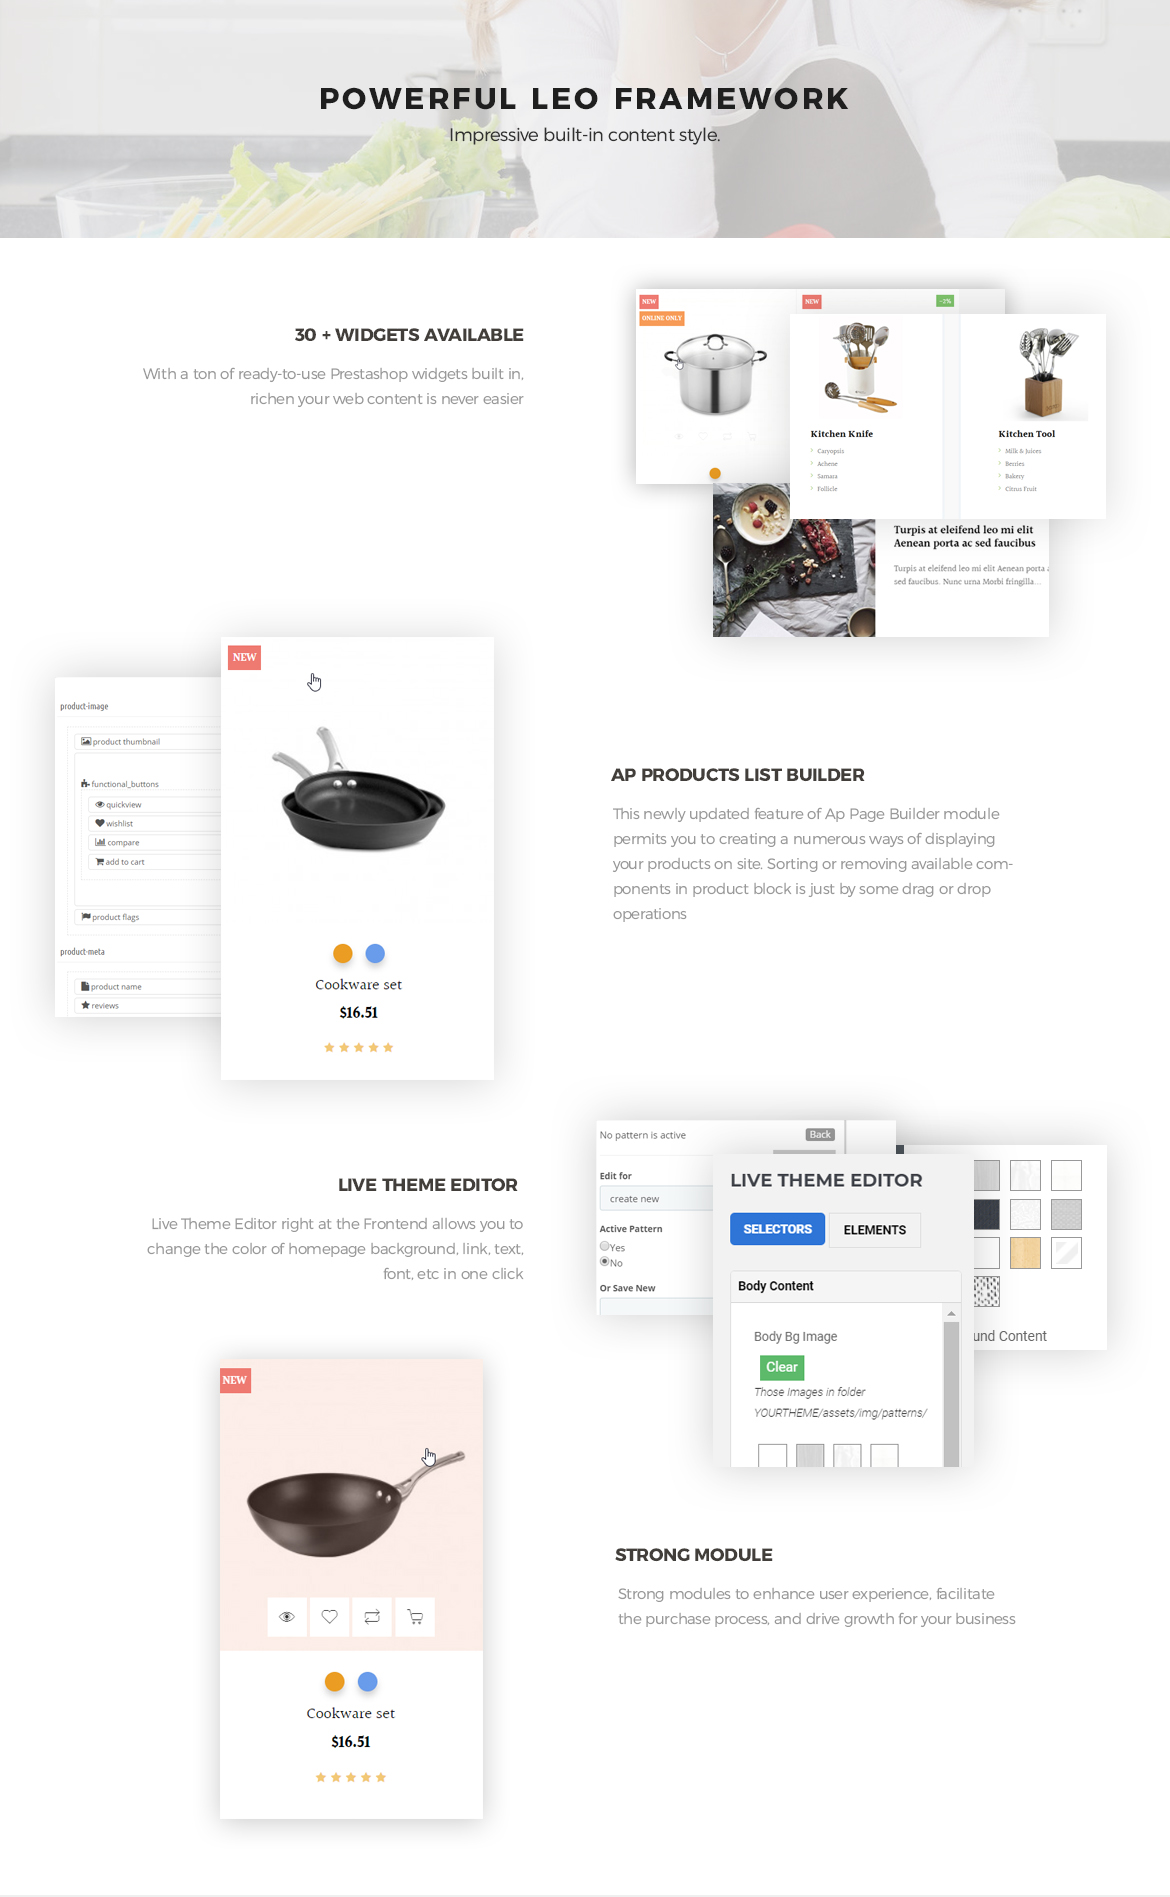 powerful prestashop framework - Leo ICook Prestashop Theme - Kitchen Tool, Cookware, Kitchenware